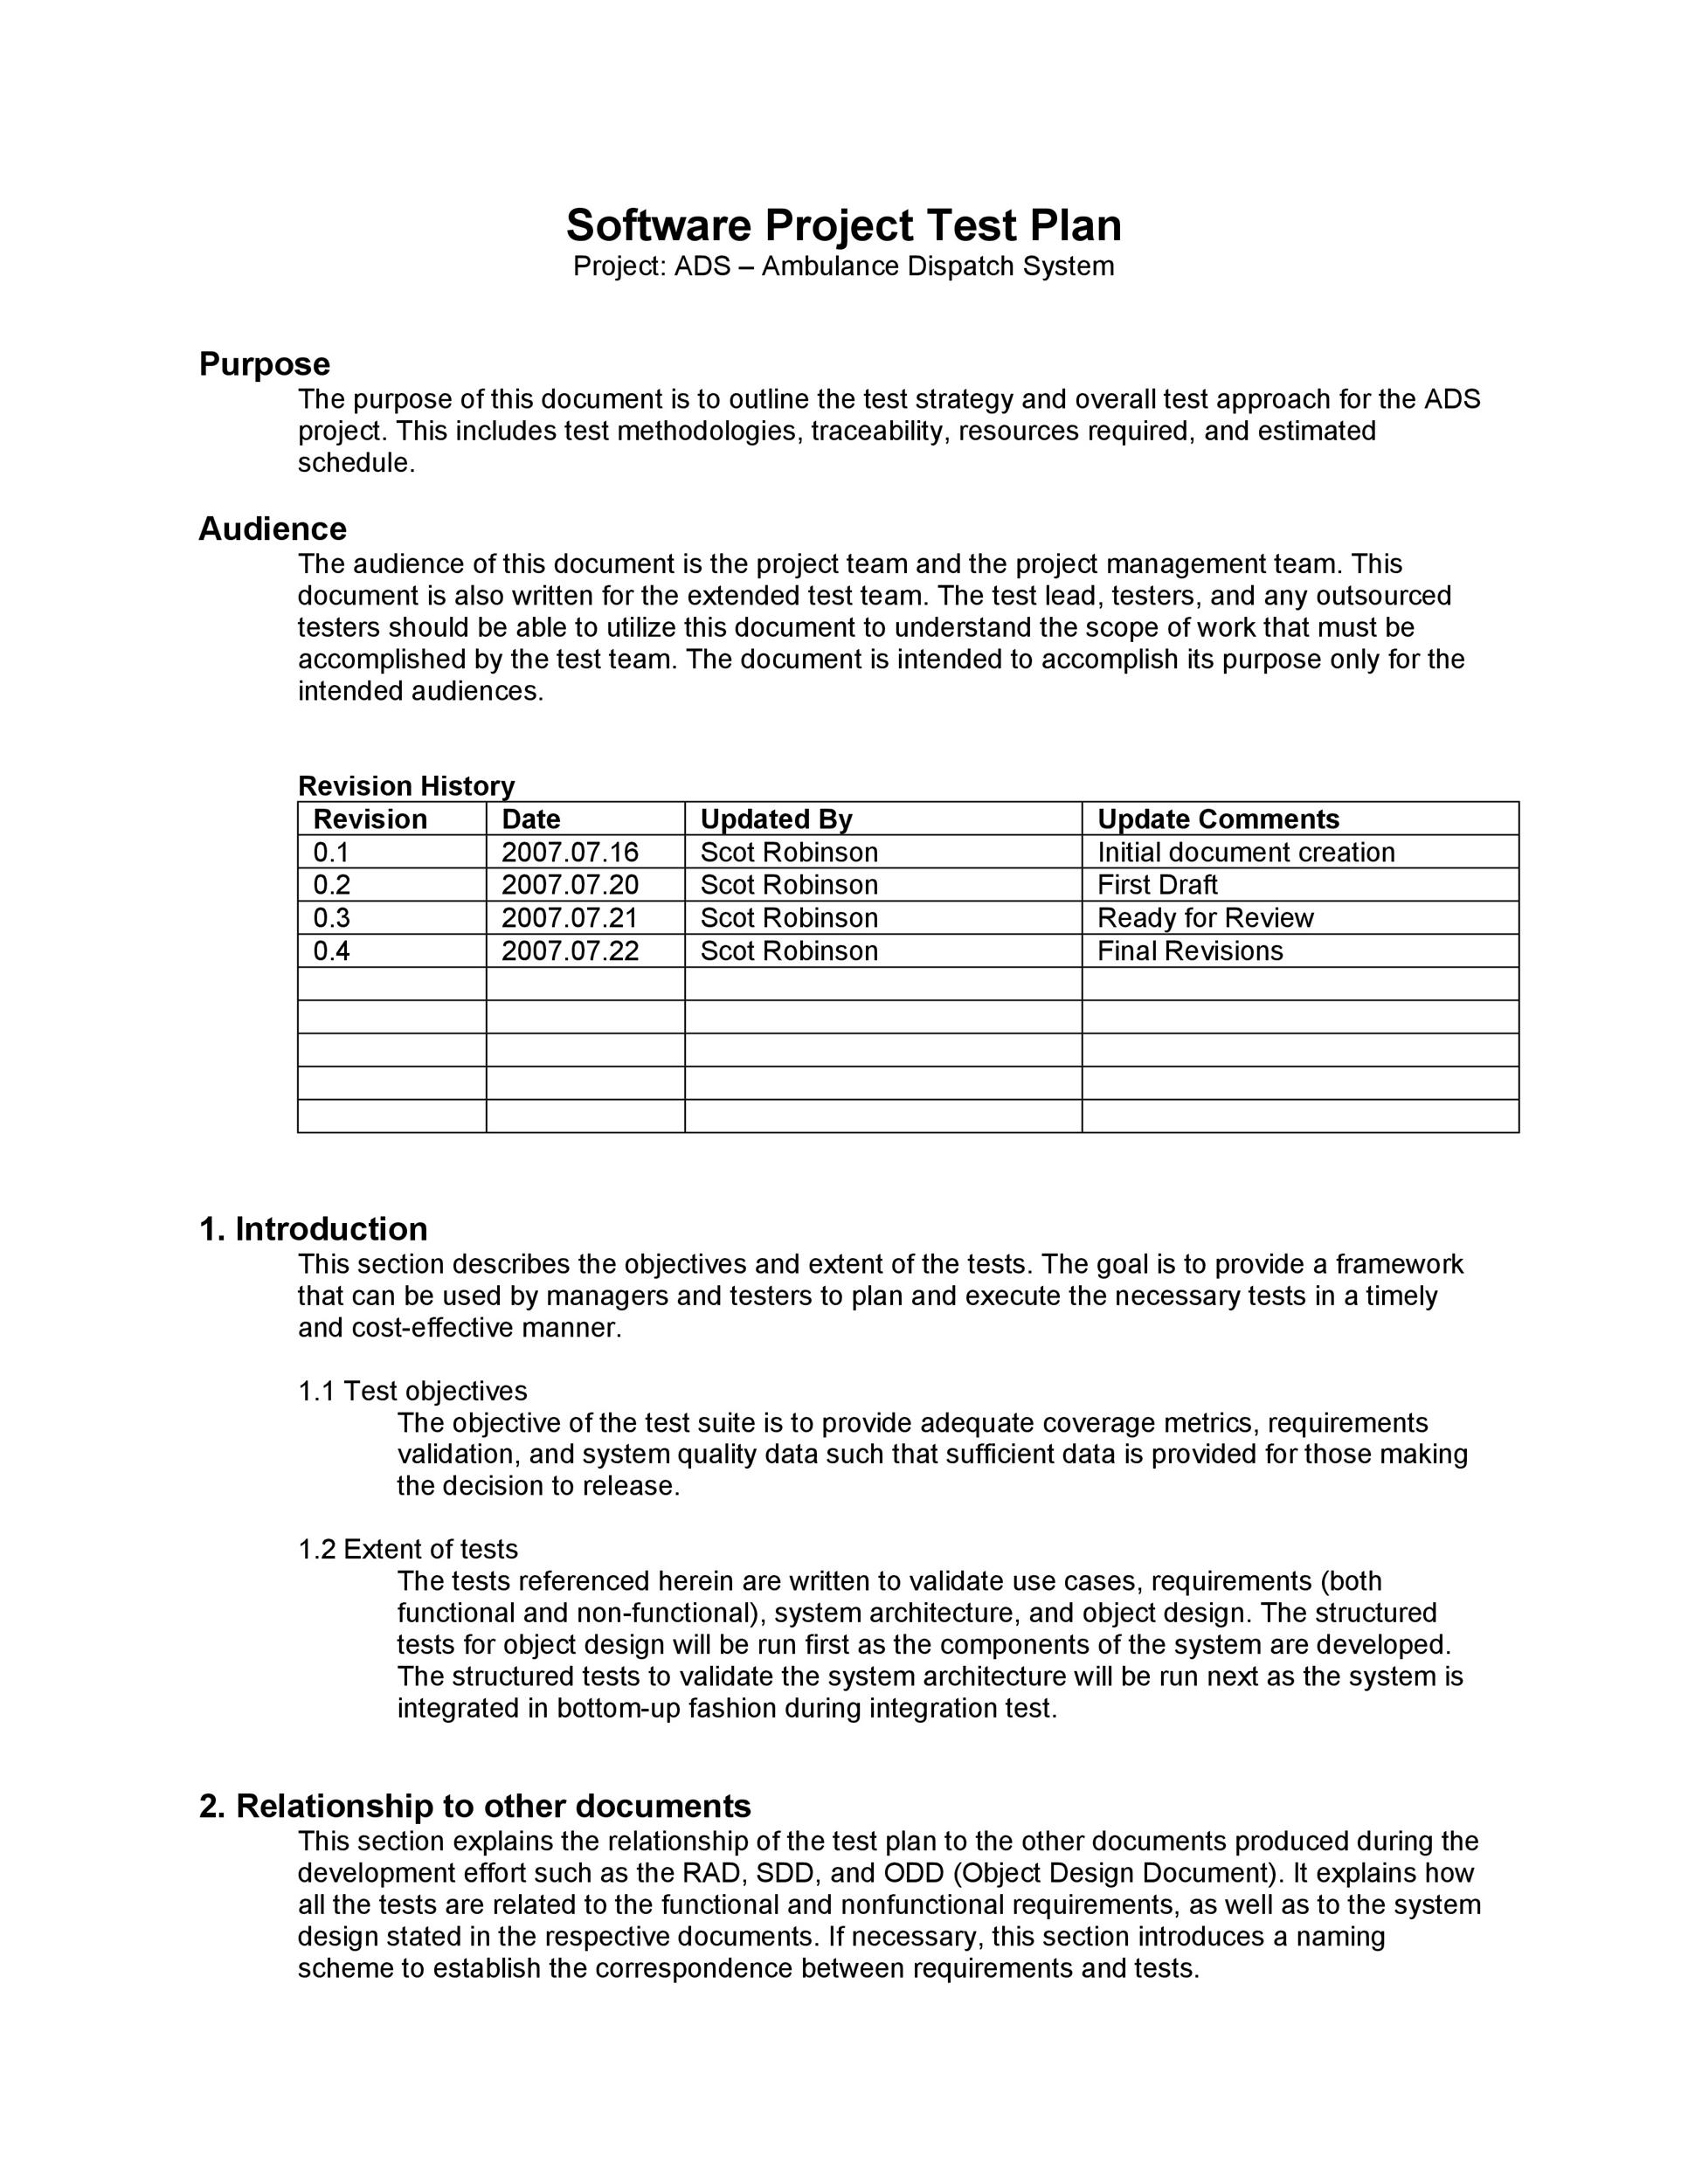 Software Test Plan Template 14